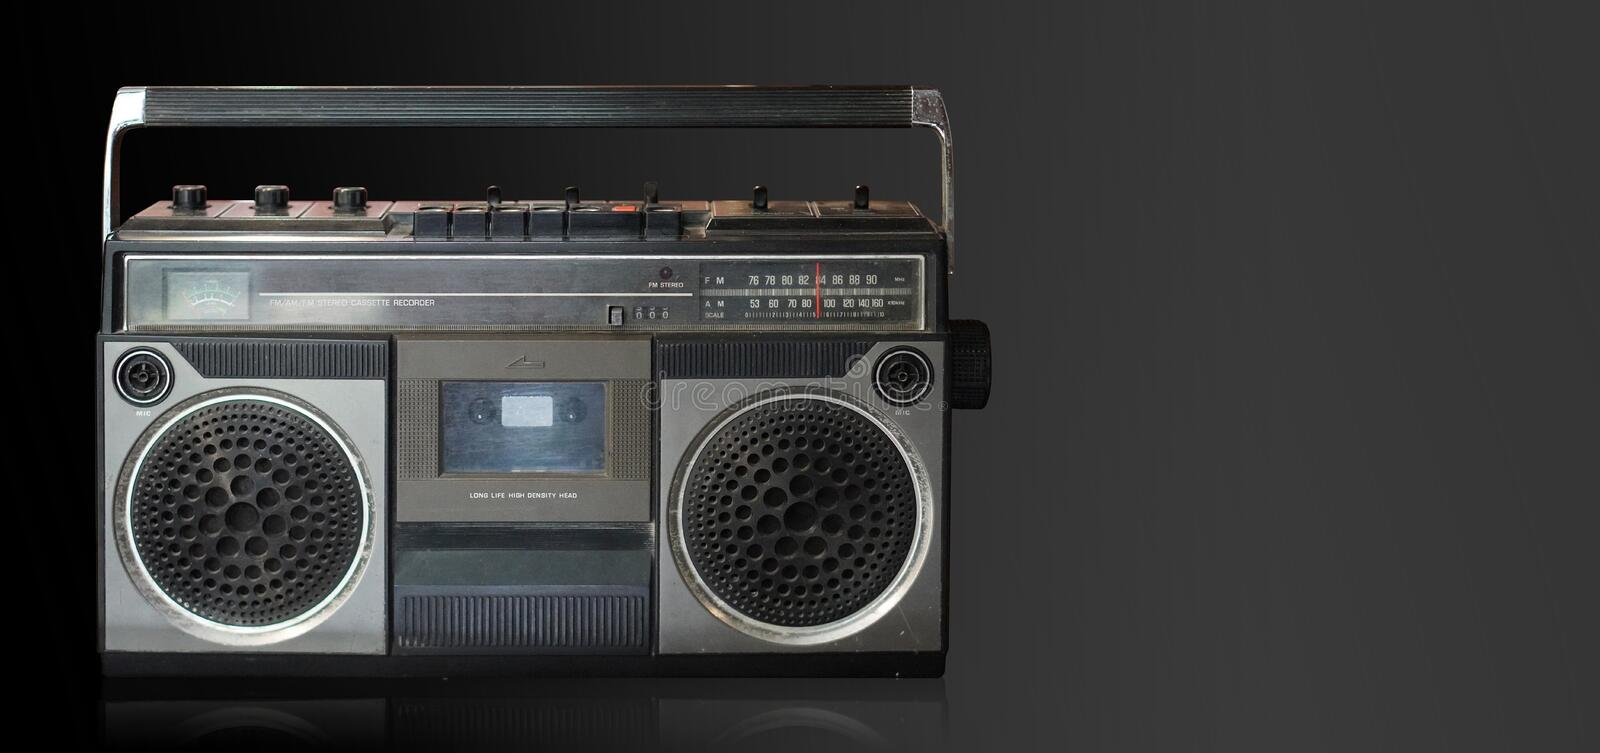 Front view antique black and gray radio on black and gray background,technology background,copy space stock images